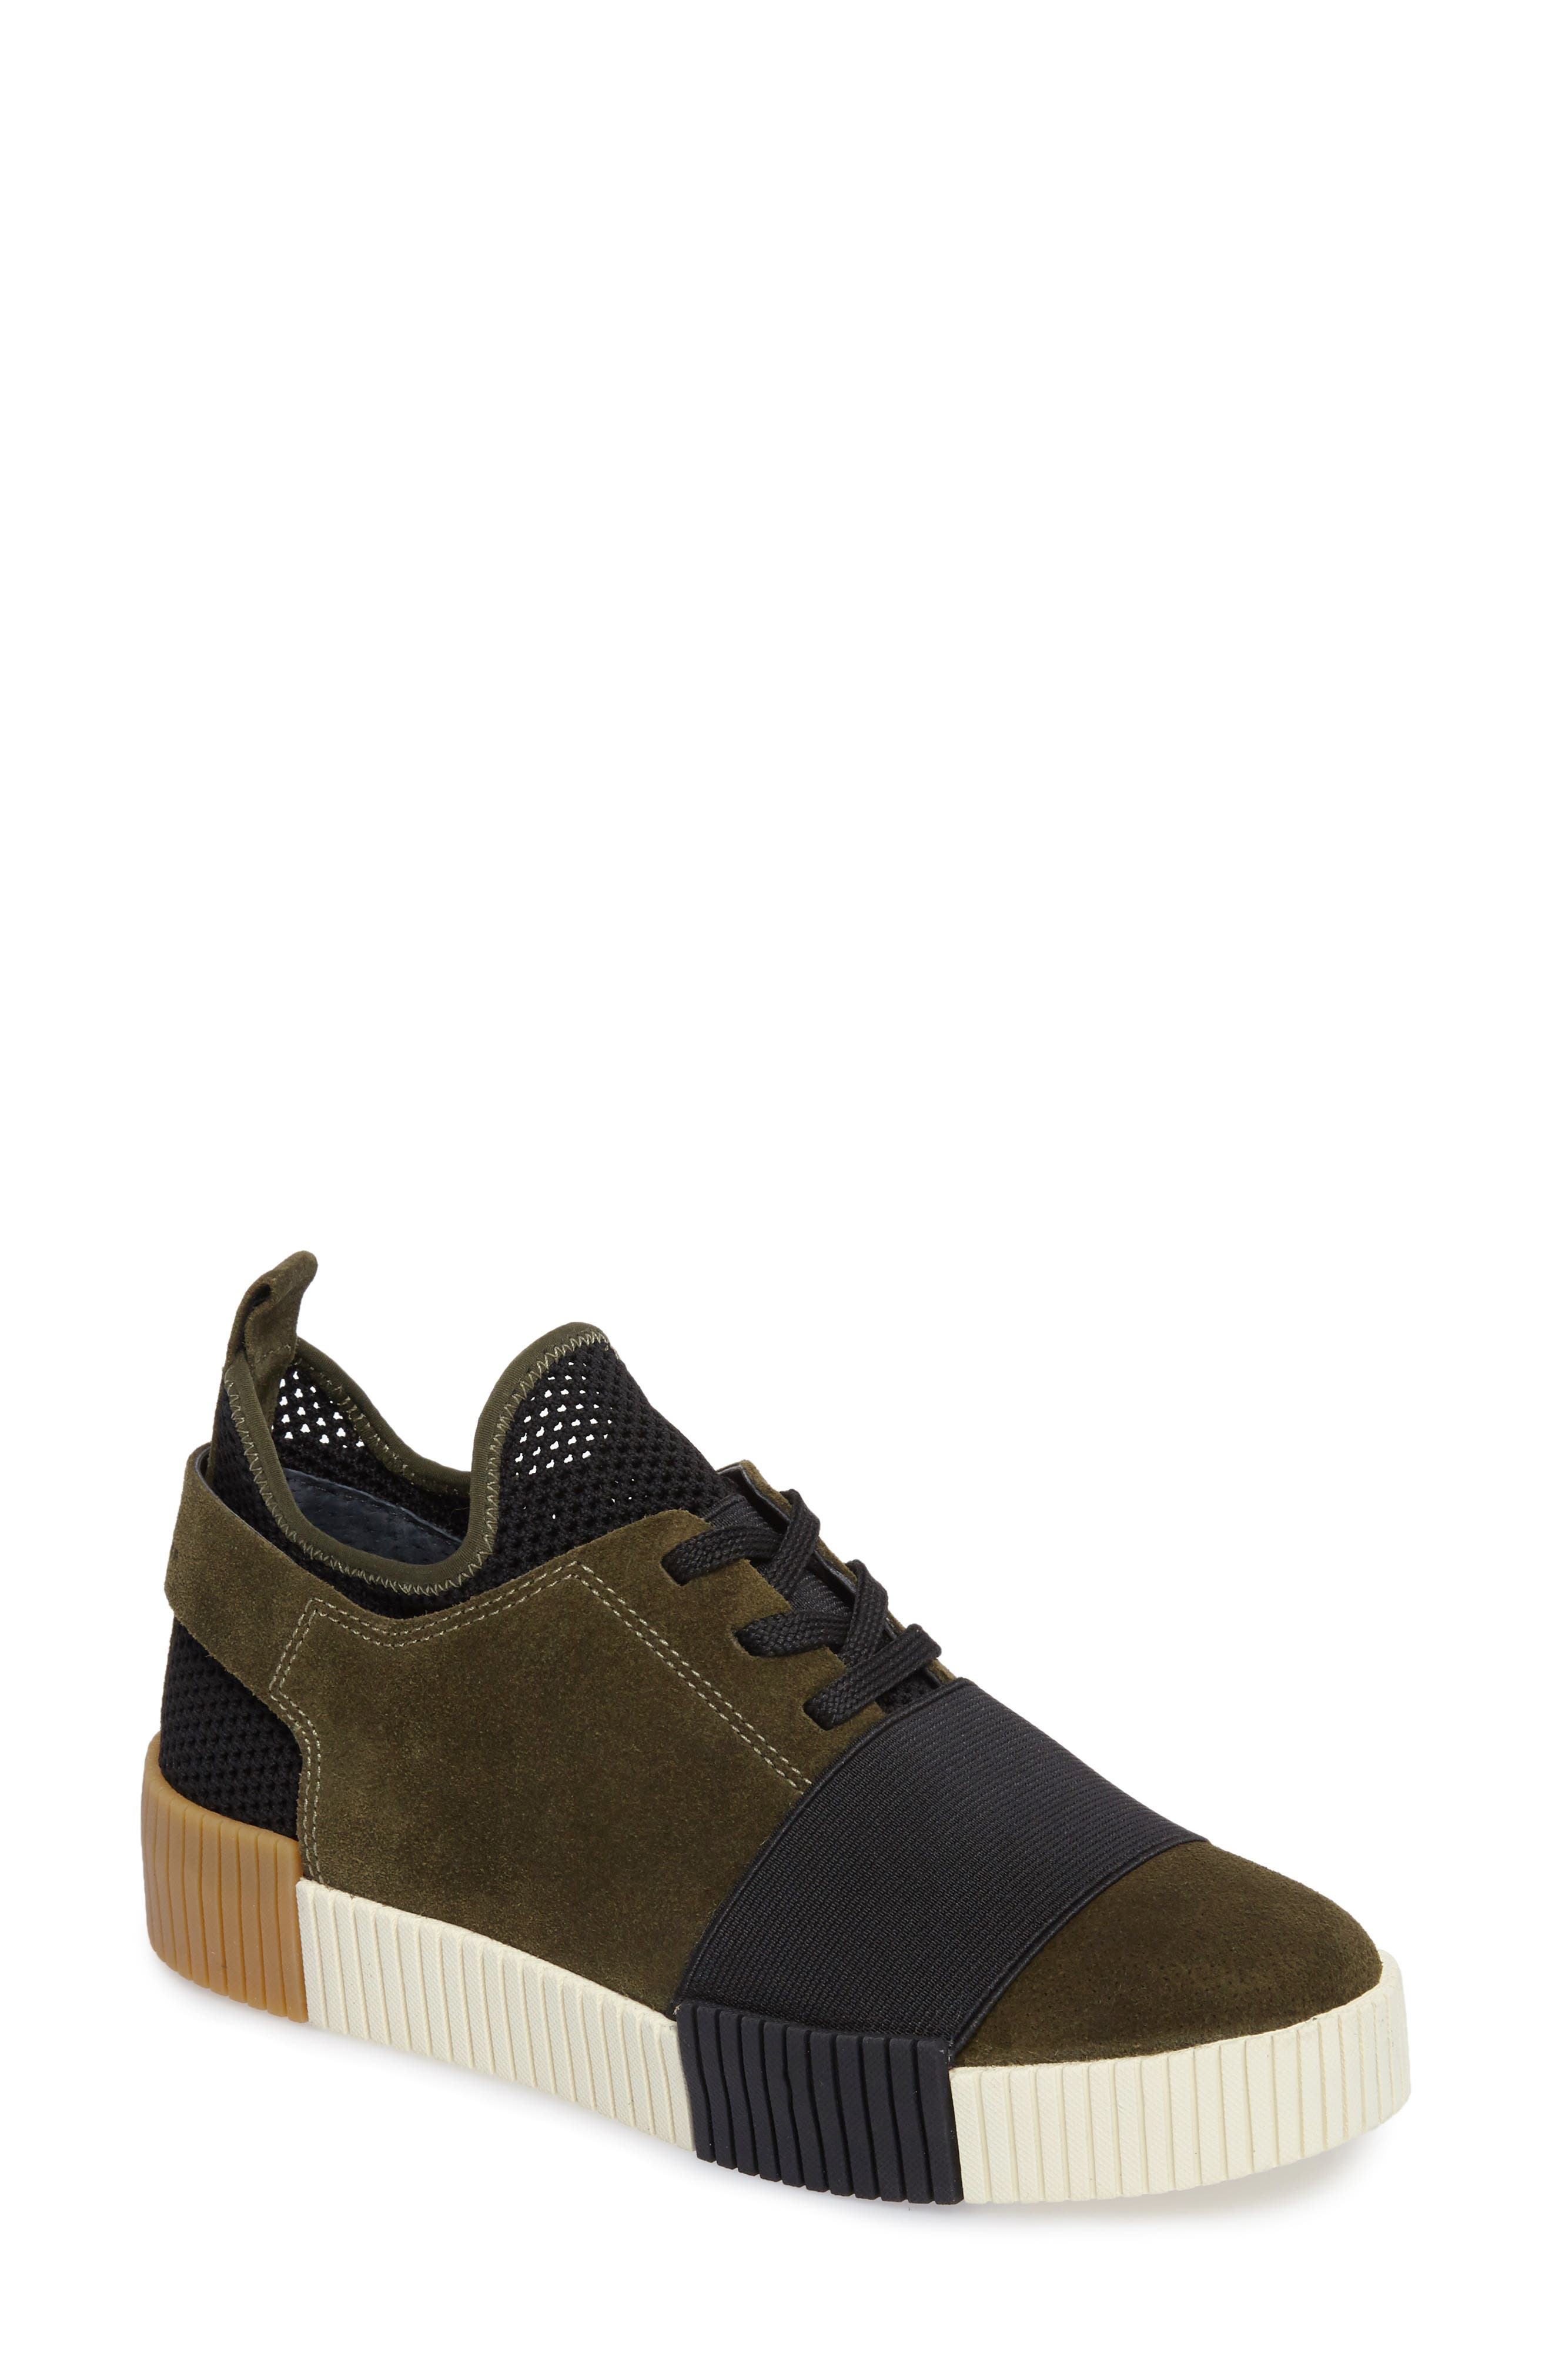 Ryley Platform Sneaker,                             Main thumbnail 1, color,                             Green Leather